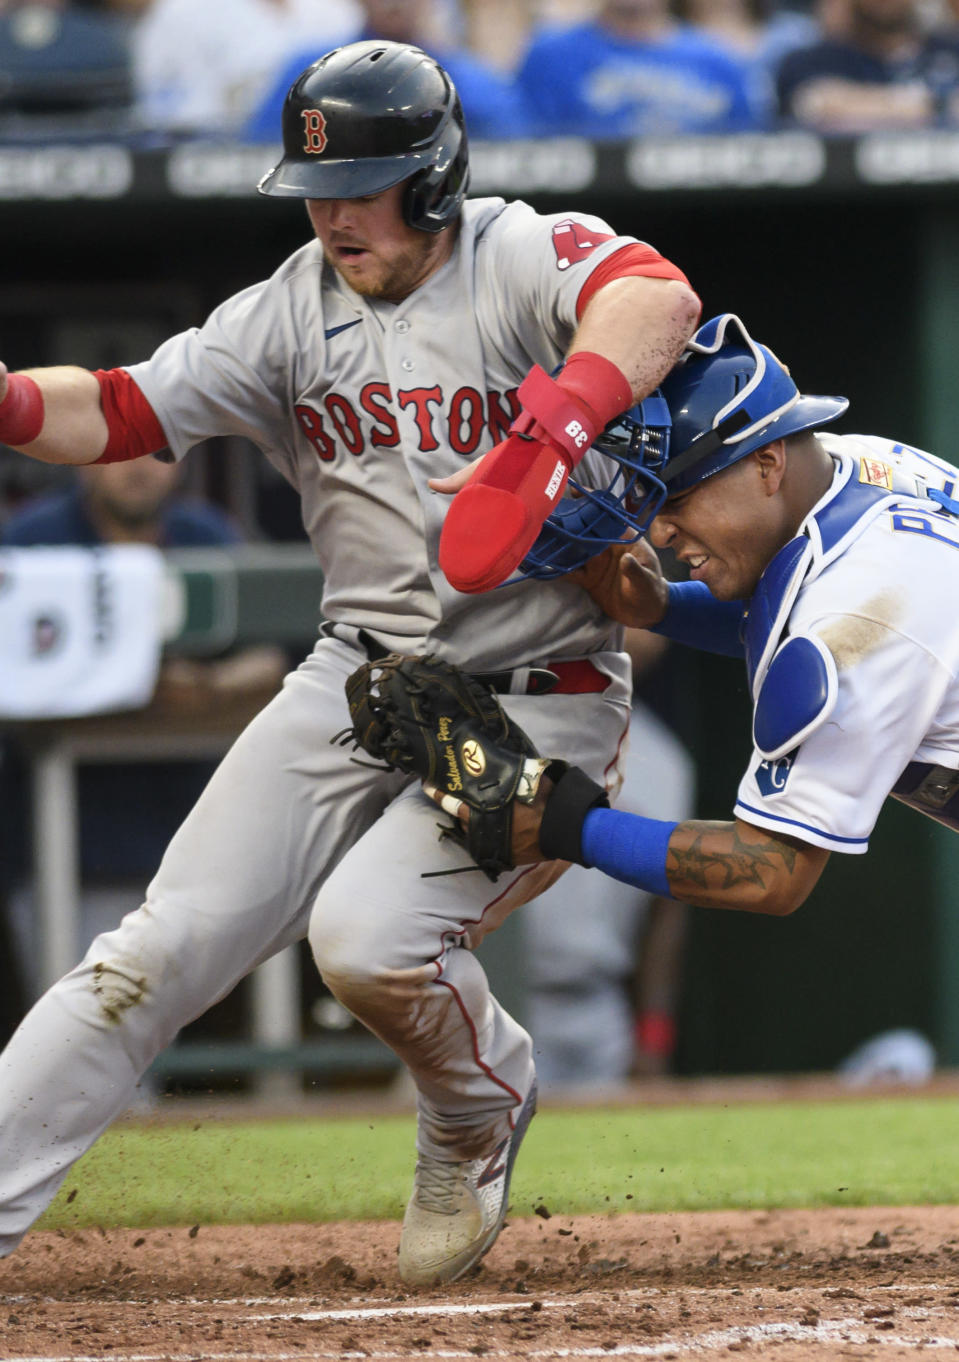 Boston Red Sox's Christian Arroyo, left, is tagged out at home by Kansas City Royals catcher Salvador Perez during the third inning of a baseball game in Kansas City, Mo., Friday, June 18, 2021. (AP Photo/Reed Hoffmann)